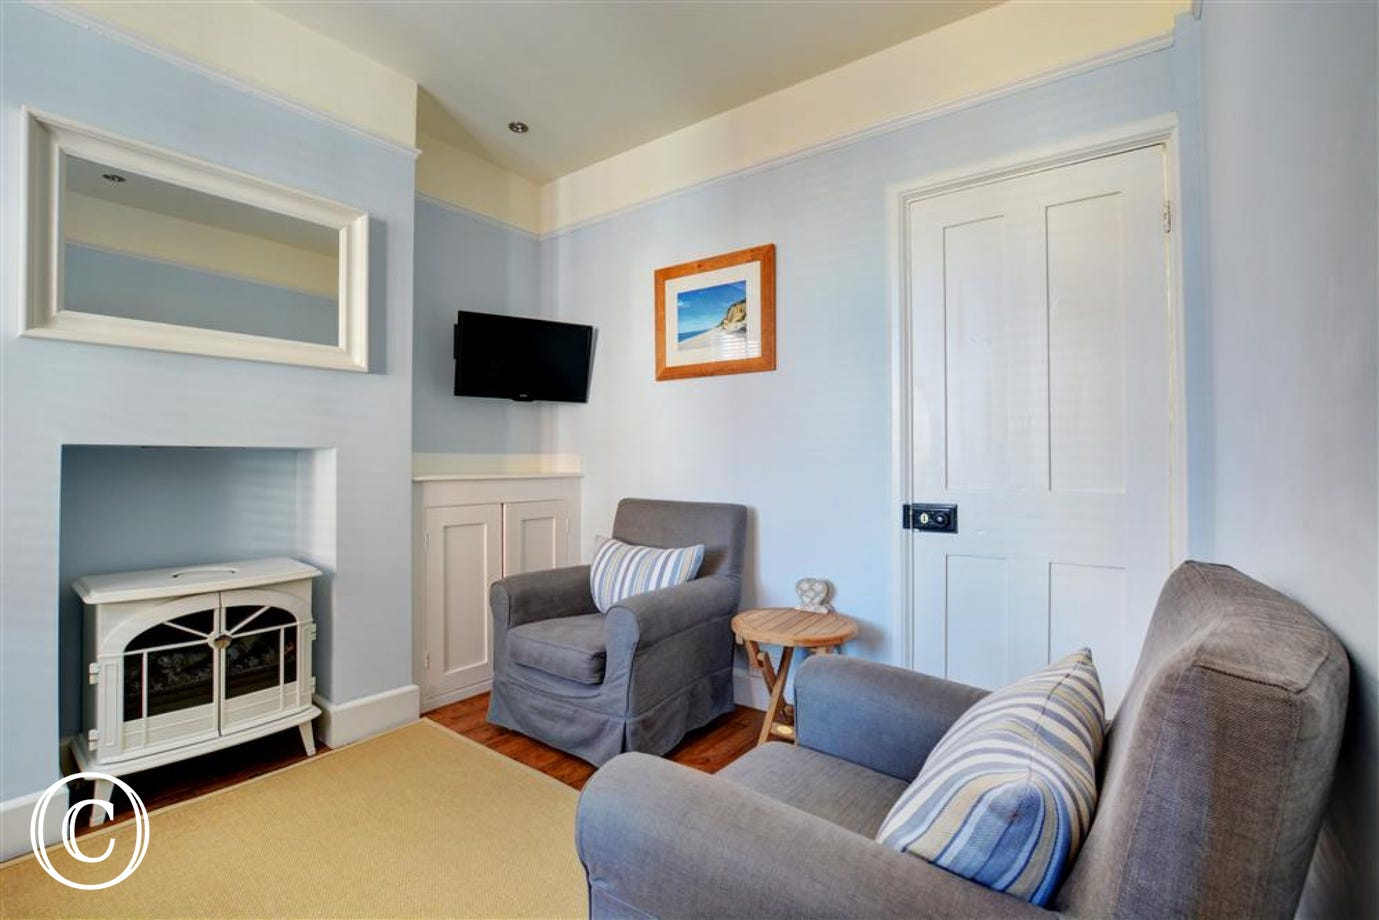 Comfortable seating within the sitting room